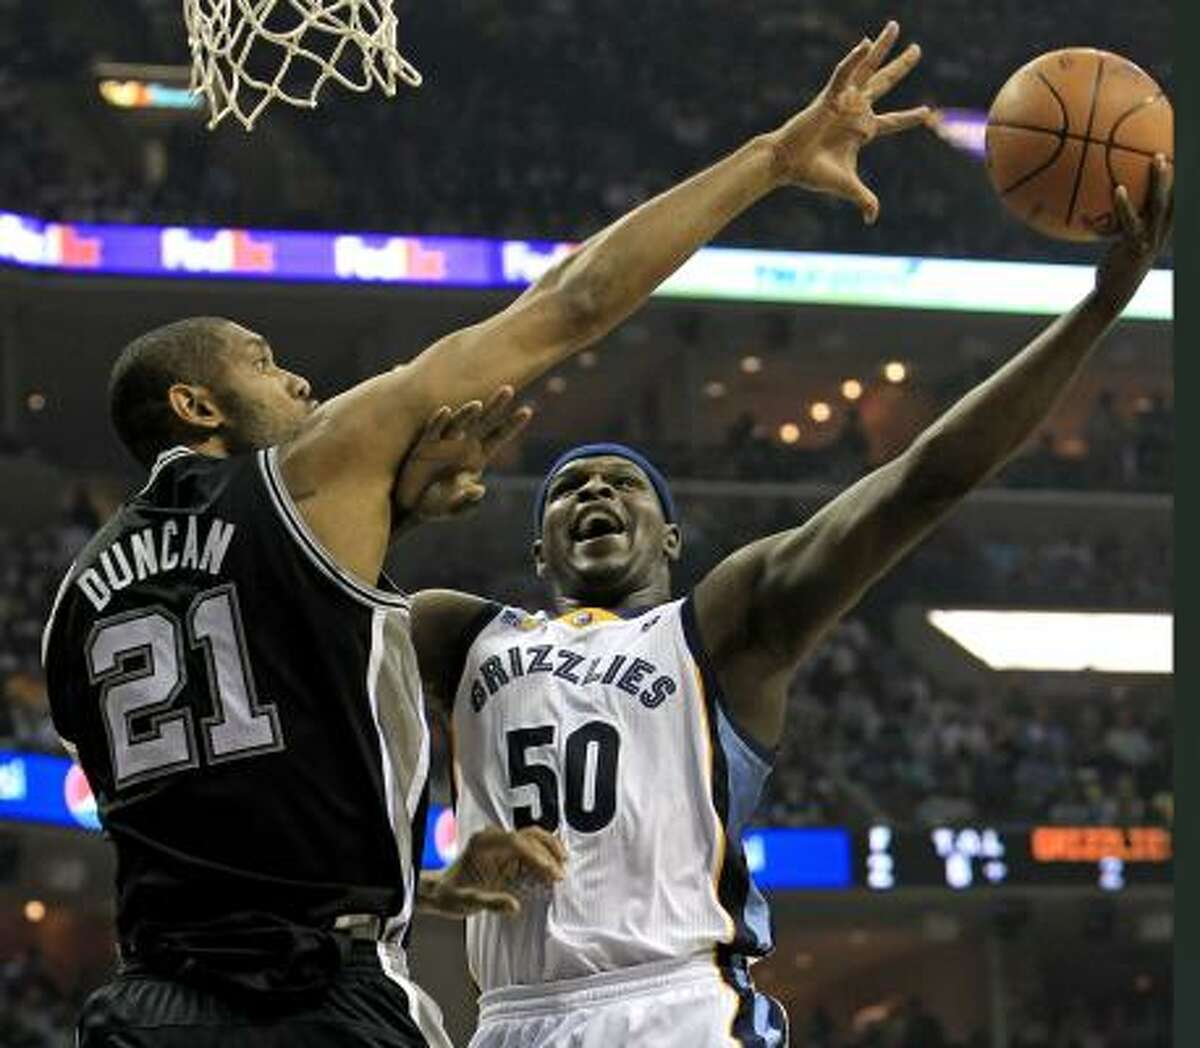 Grizzlies forward Zach Randolph (50) shoots over the reach of Spurs forward Tim Duncan during the first half. Randolph finished with 31 points and 11 rebounds.